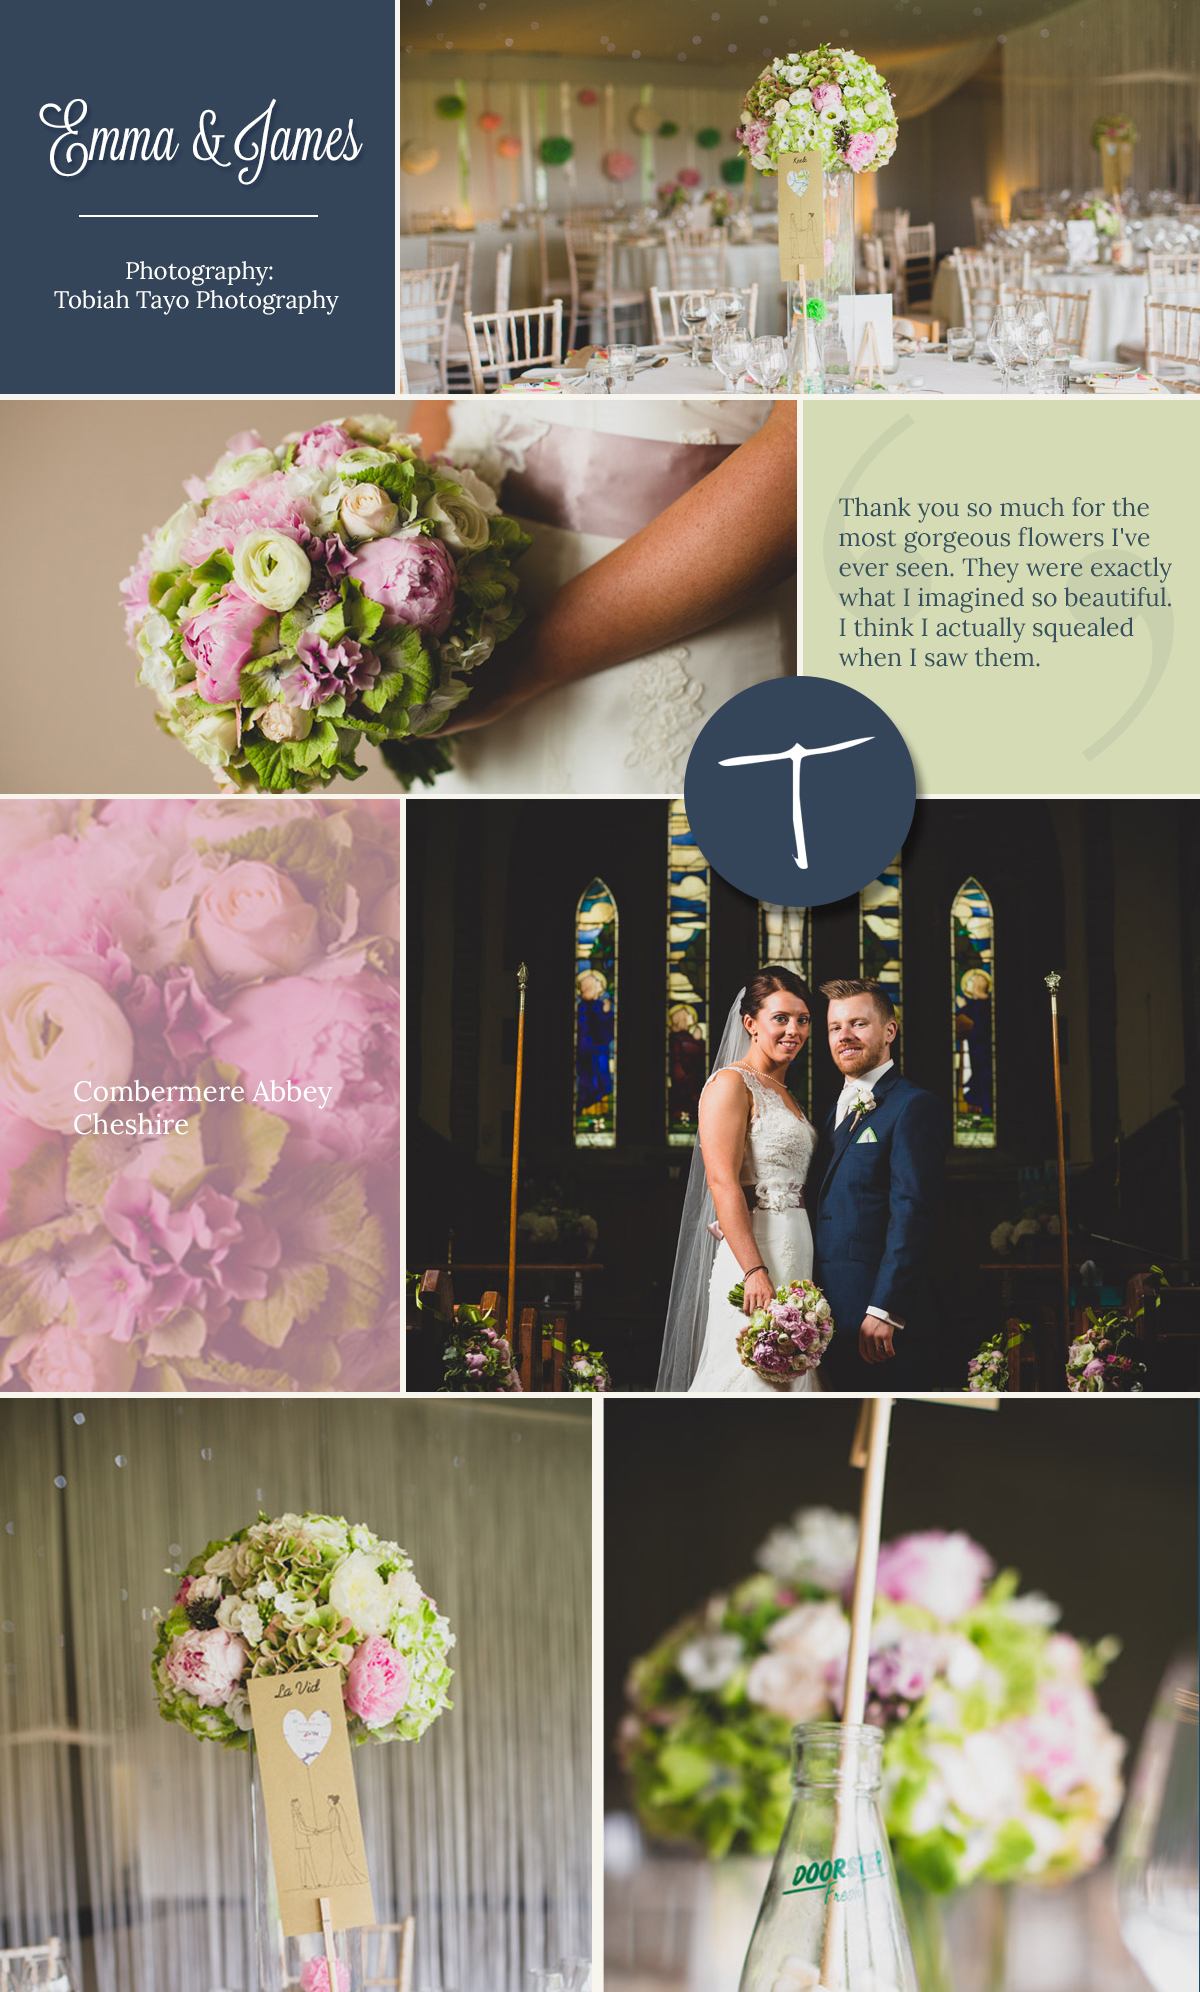 Combermere Abbey wedding with vibrant floral styling and bridal bouquet by Tineke Floral design in Derbyshire.